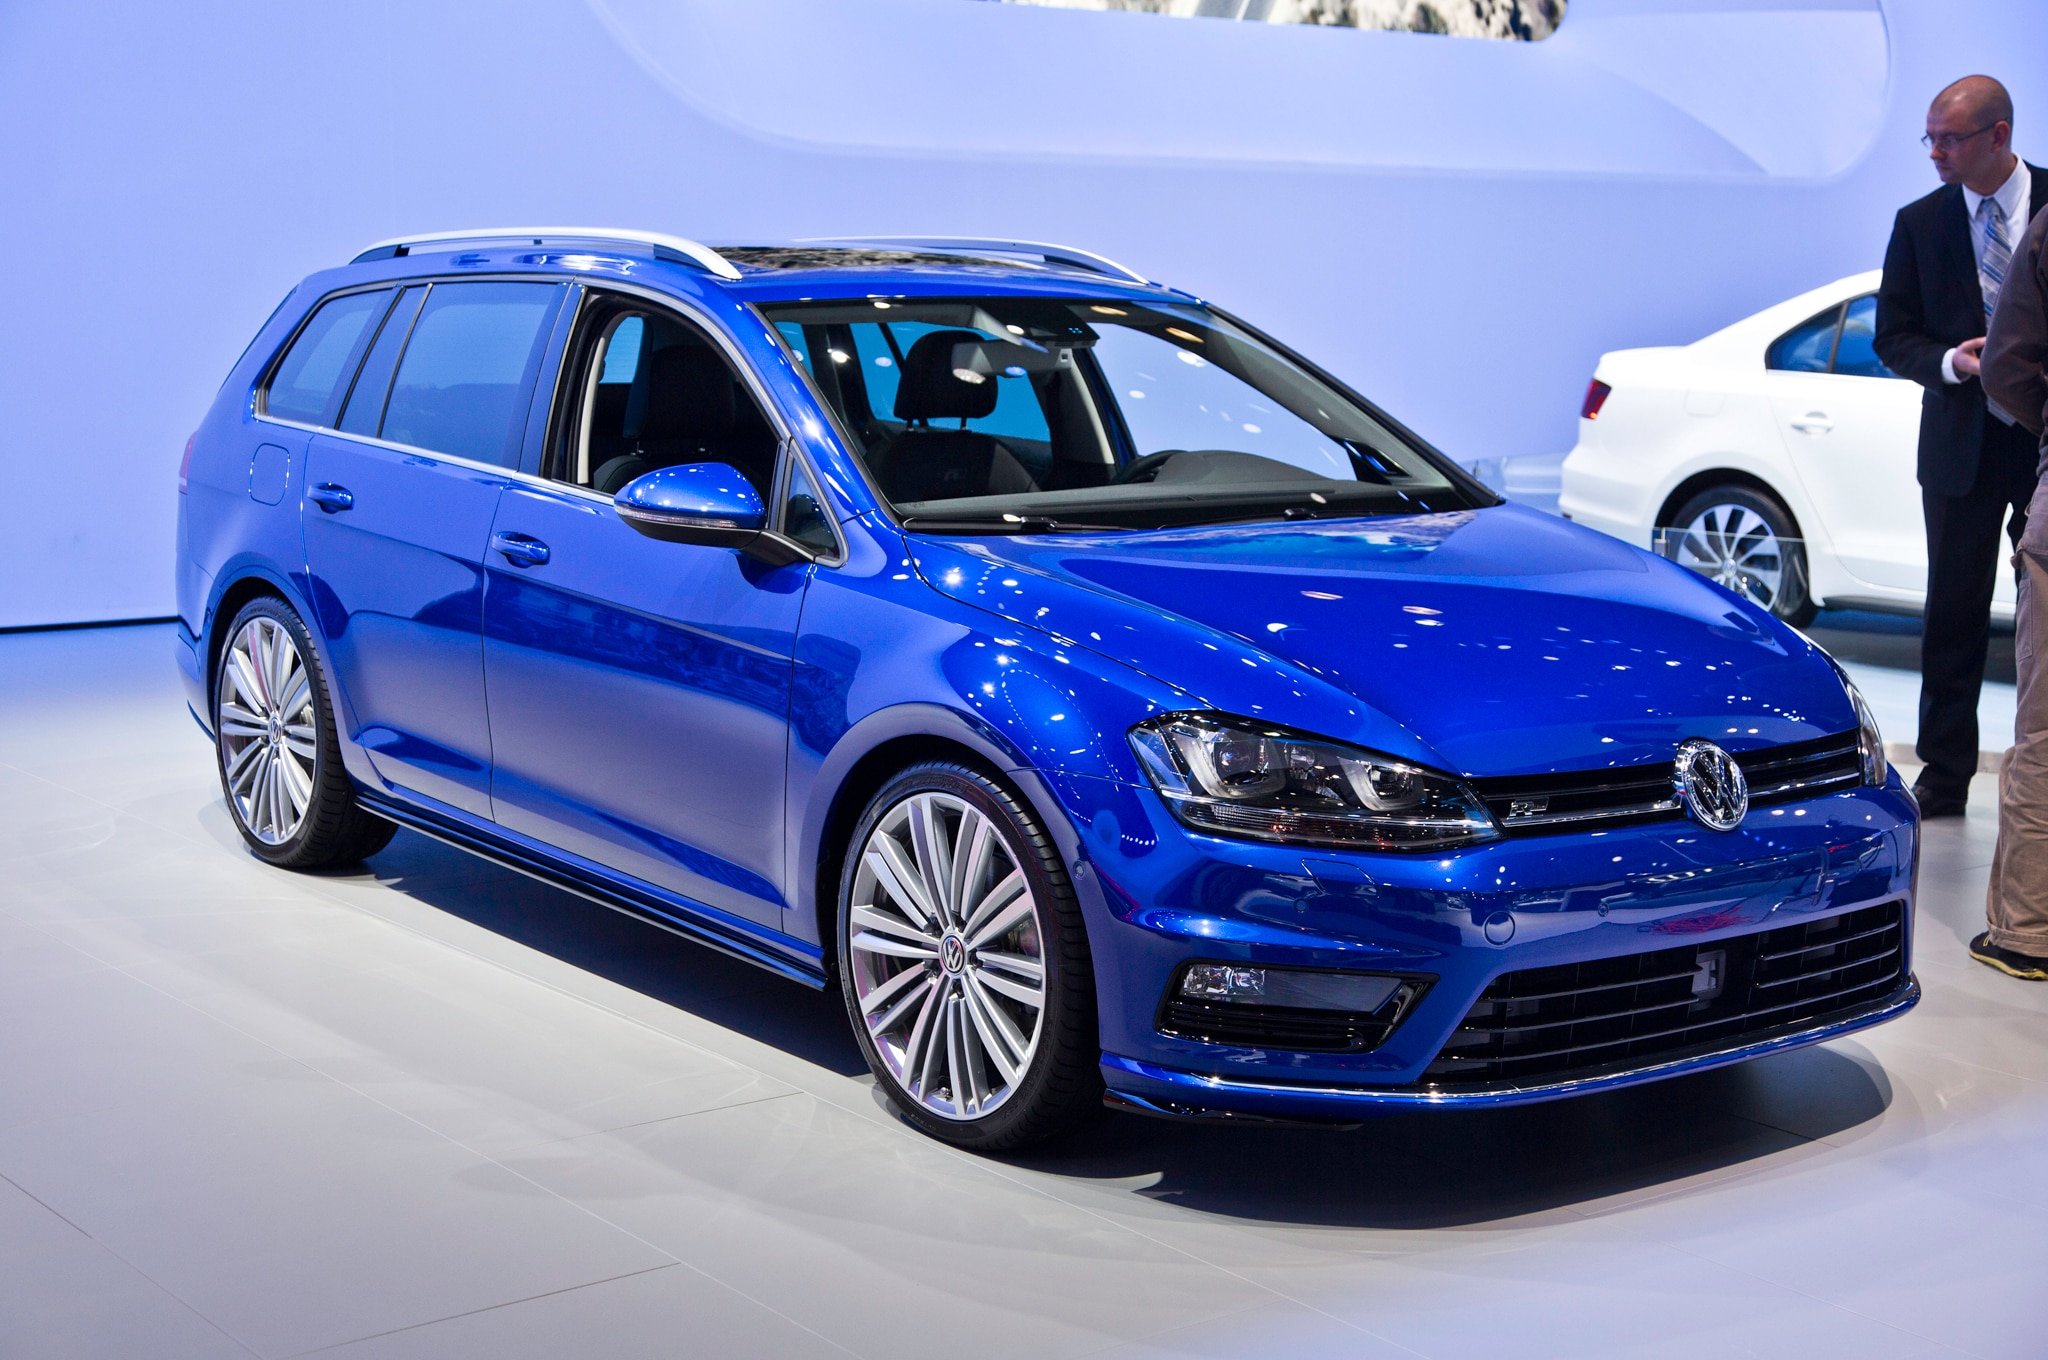 awd confirmed for volkswagen golf wagon expected to outsell hatchback. Black Bedroom Furniture Sets. Home Design Ideas